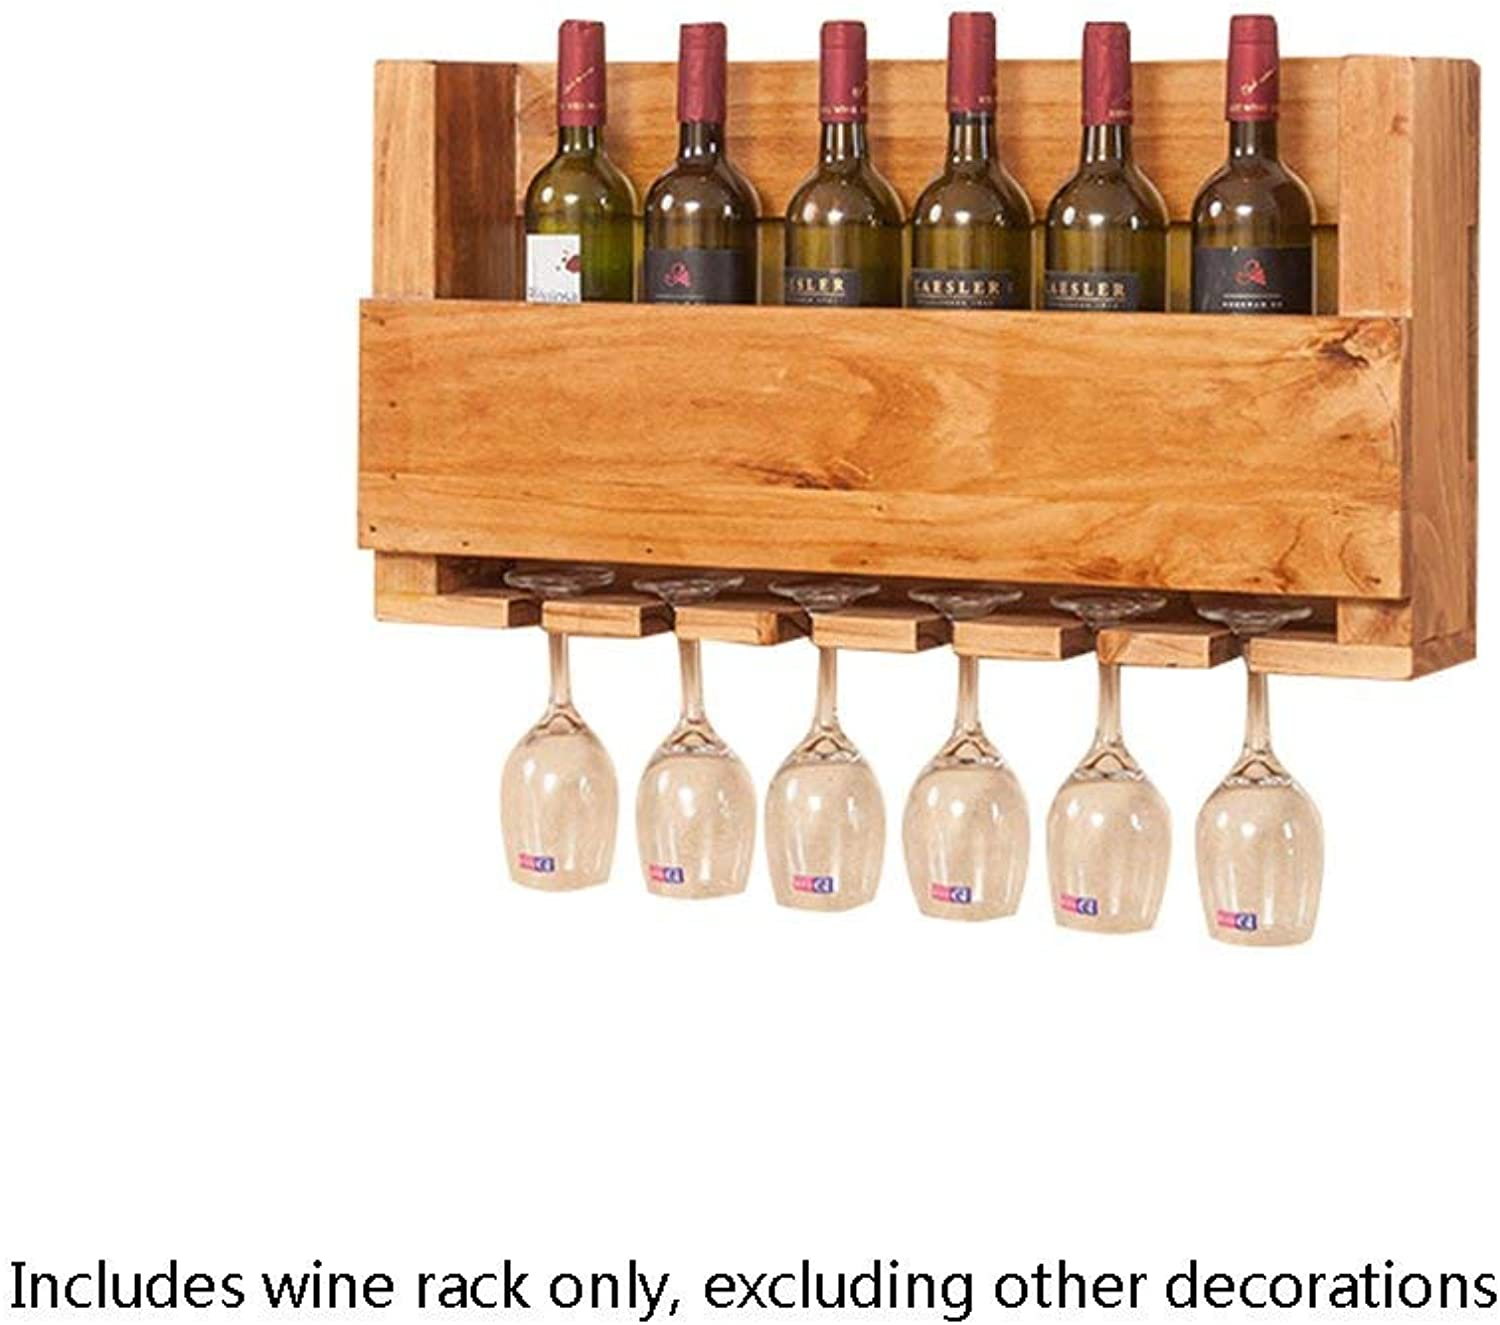 Wine Racks Wooden Suspension Wall Hanging Ornaments Creative Wine Glass Rack Cup Holder Multifunctional Shelf -70  14  36cm (color   -, Size   -)